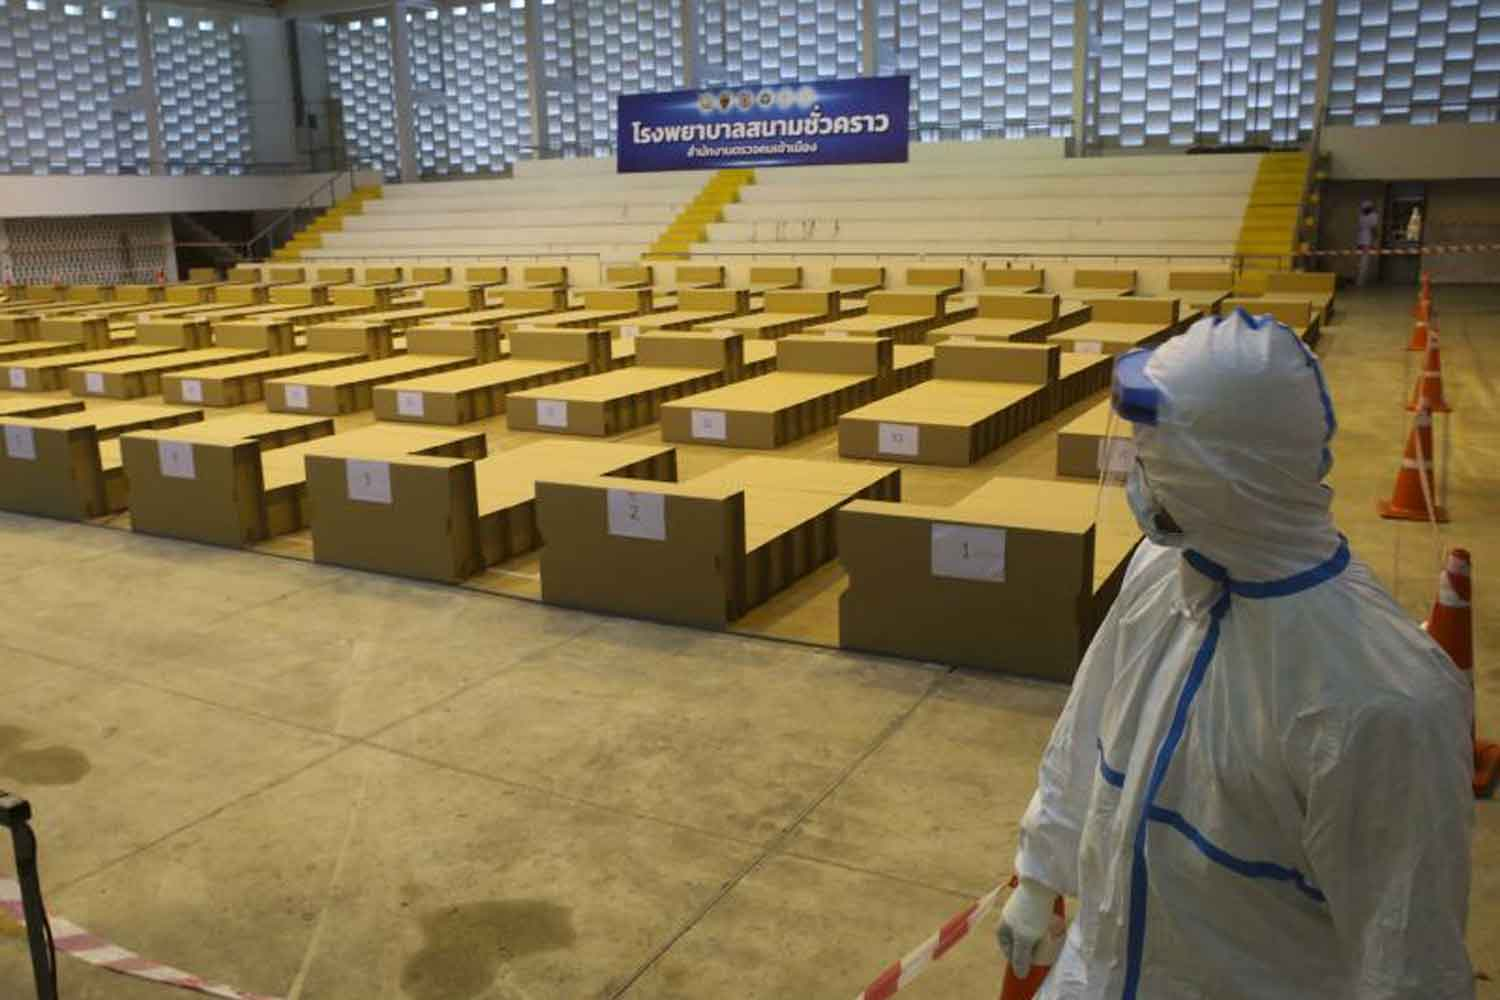 A health worker in protective gear looks at beds in the Boonyachinda Stadium-turned- field hospital on Vibhavadi Rangsit Road, Bangkok, on Monday. The police prepared the temporary facility to handle illegal migrants who contracted Covid-19 in the detention facilities of the Immigration Bureau.  (Photo: Pattarapong Chatpattarasill)